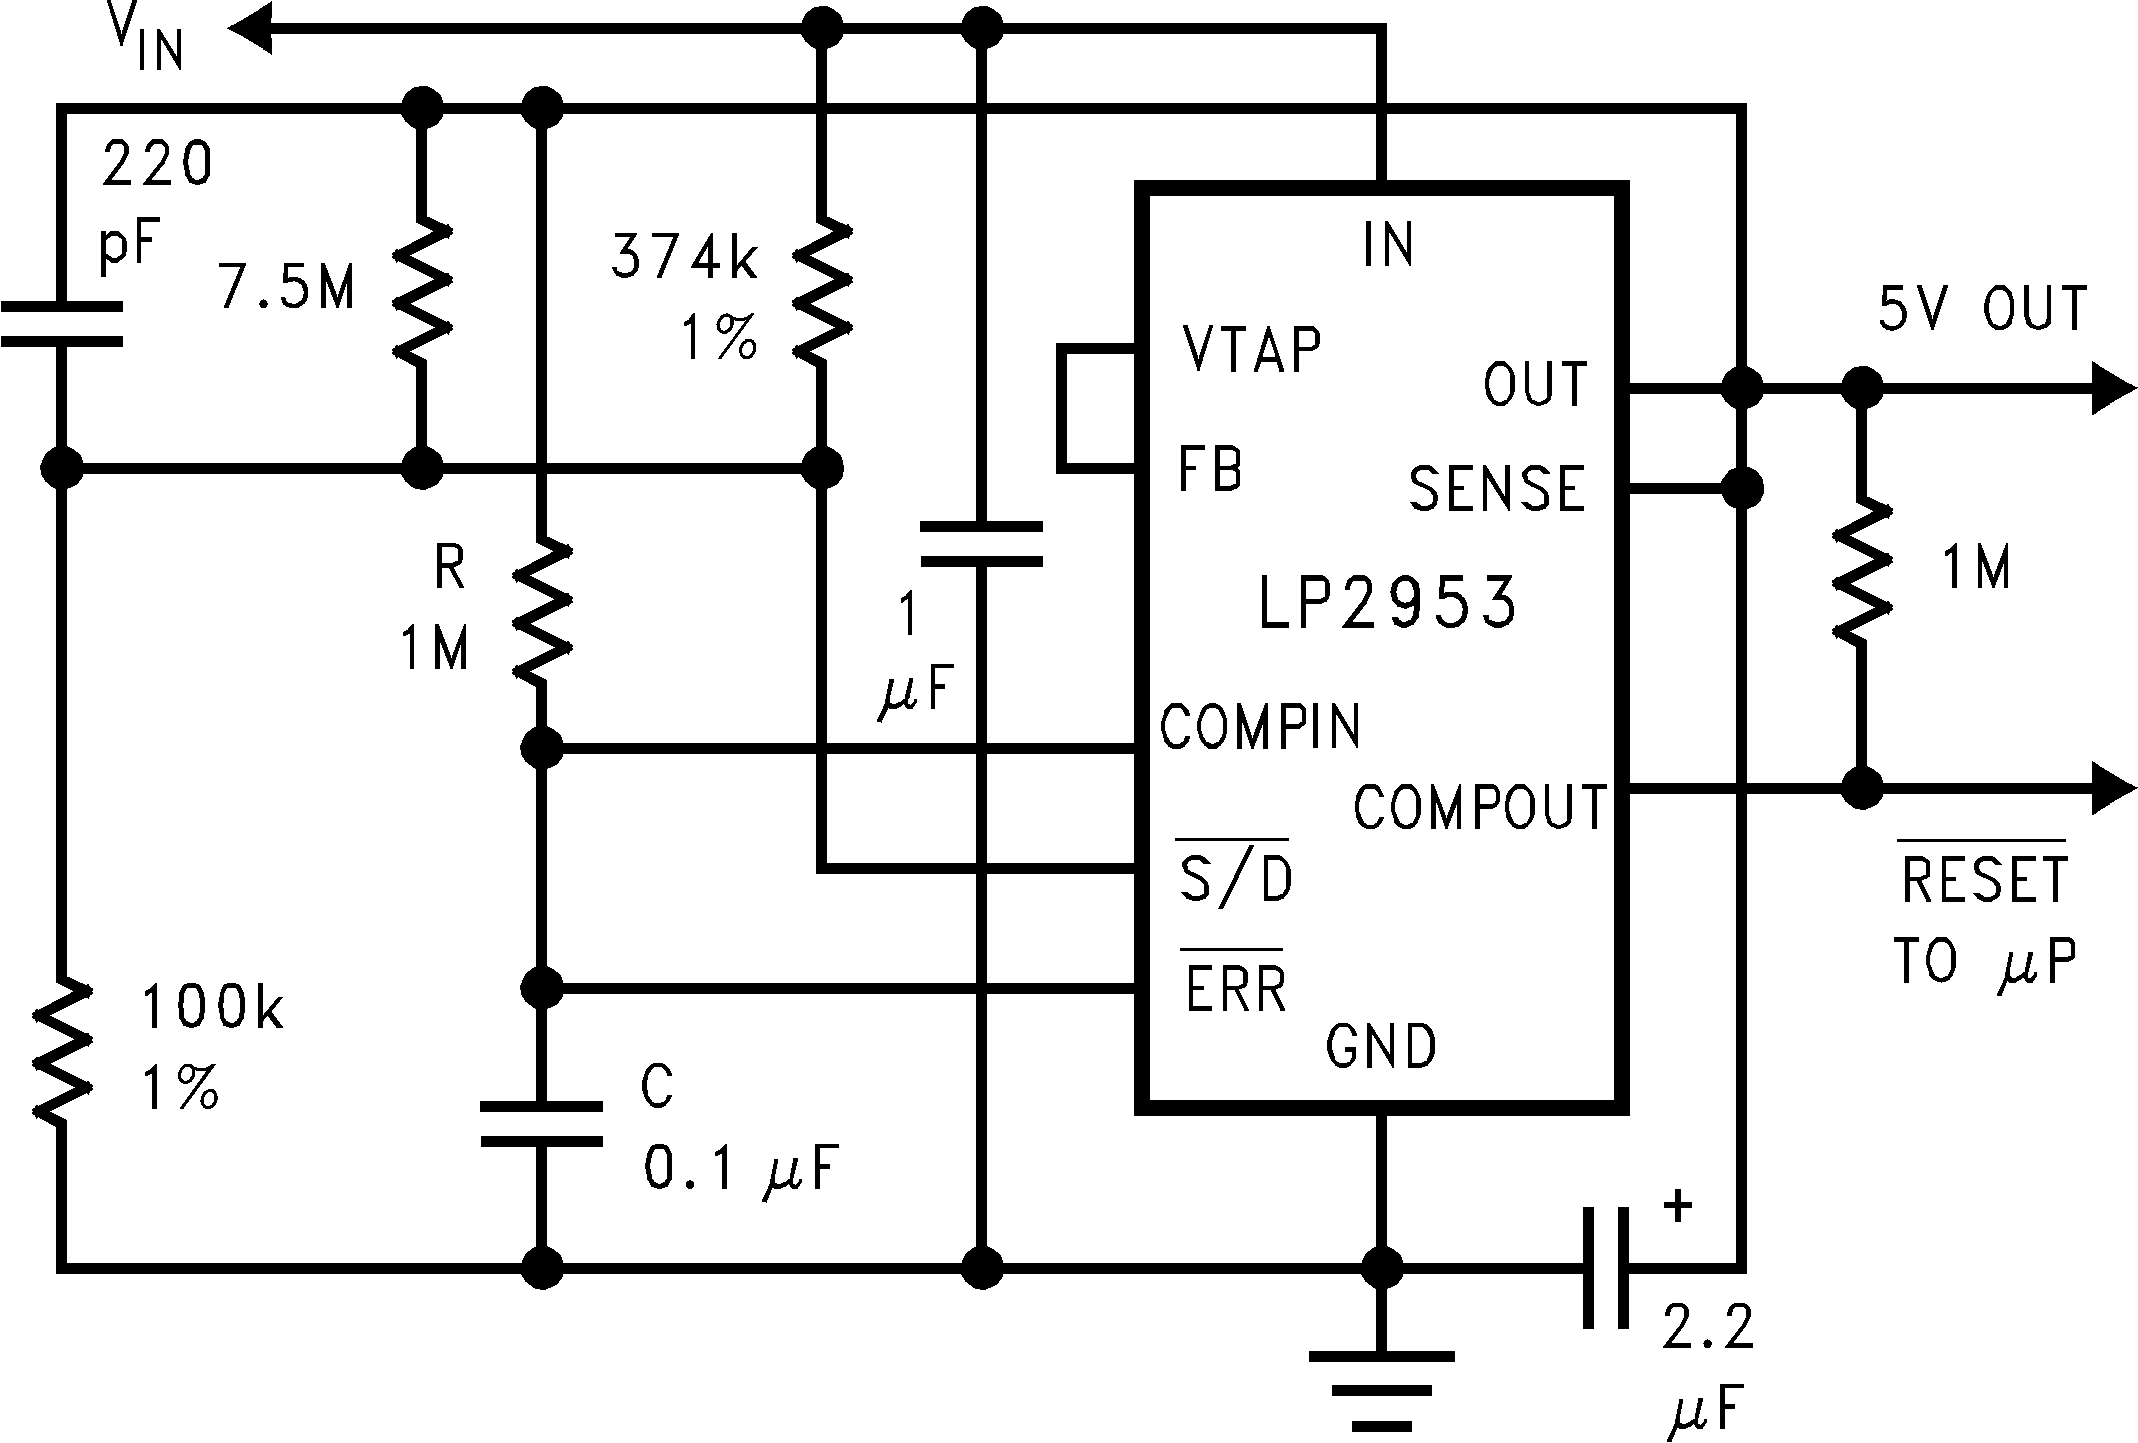 Lp2953 Figure 5 Comparator Circuit With Hysteresis Its Timing Diagram Shows As 45 Lp2952 N Lp2952a Lp2953a 01112724